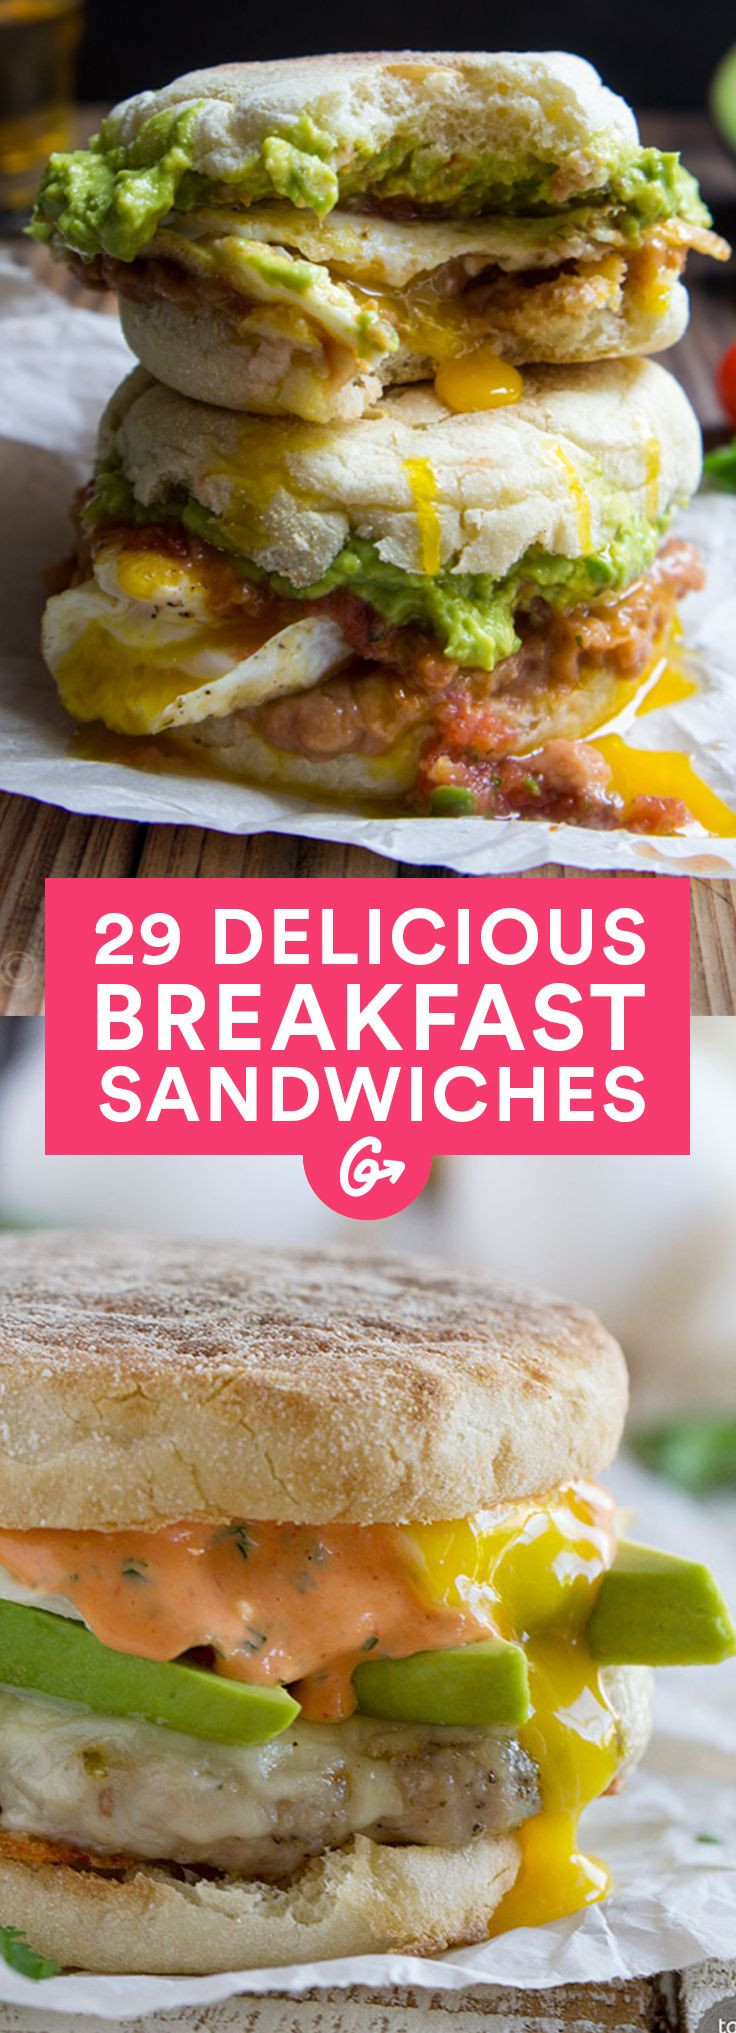 Healthy Breakfast Sandwich Fast Food  These 27 Breakfast Sandwiches Put Fast Food Options to